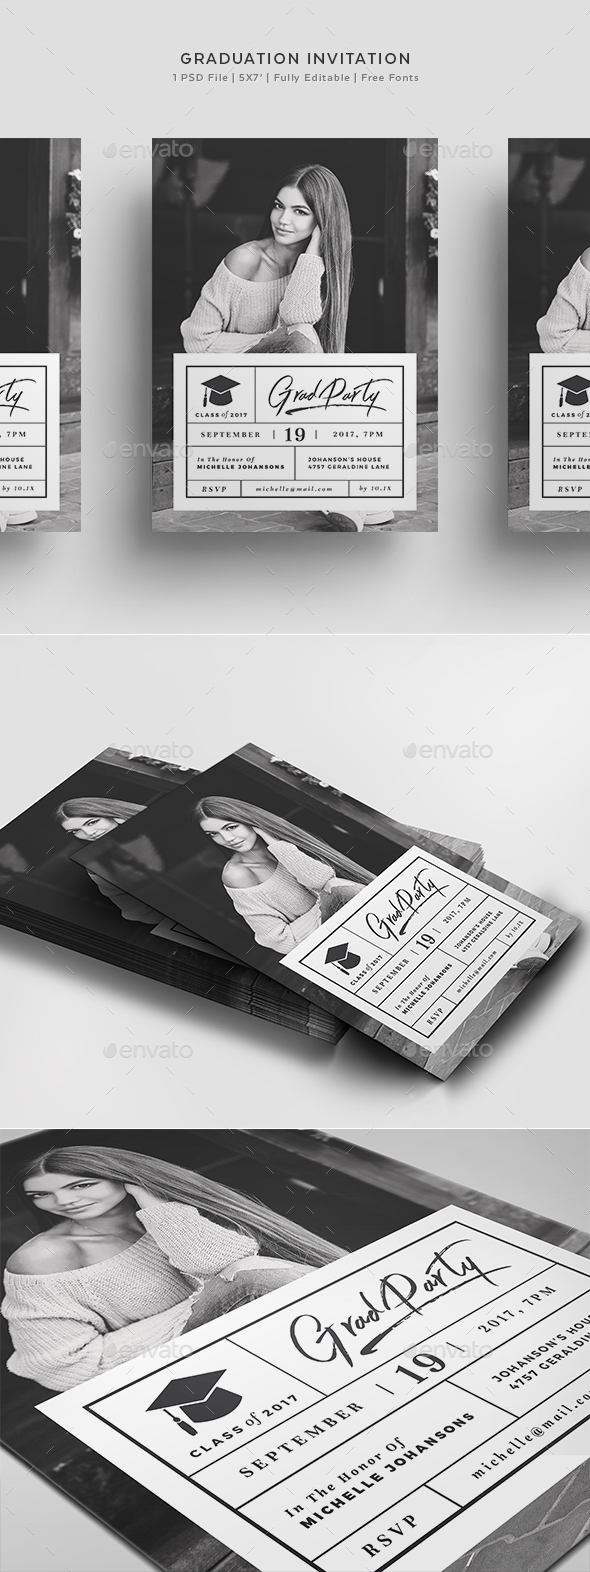 Graduation Invitation Template by Agape_Z | GraphicRiver